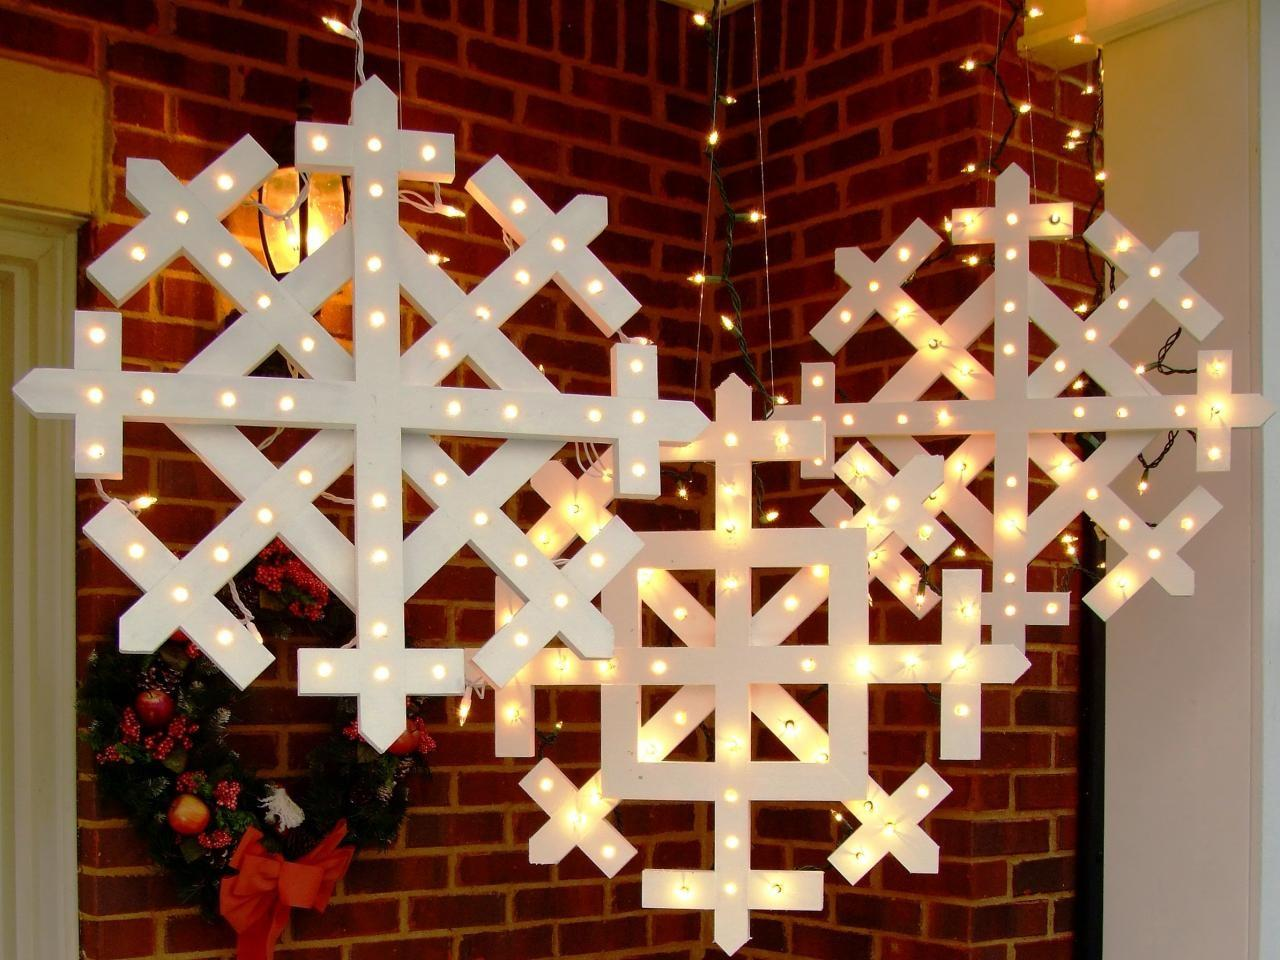 Make Wooden Snowflakes Lights Tos Diy